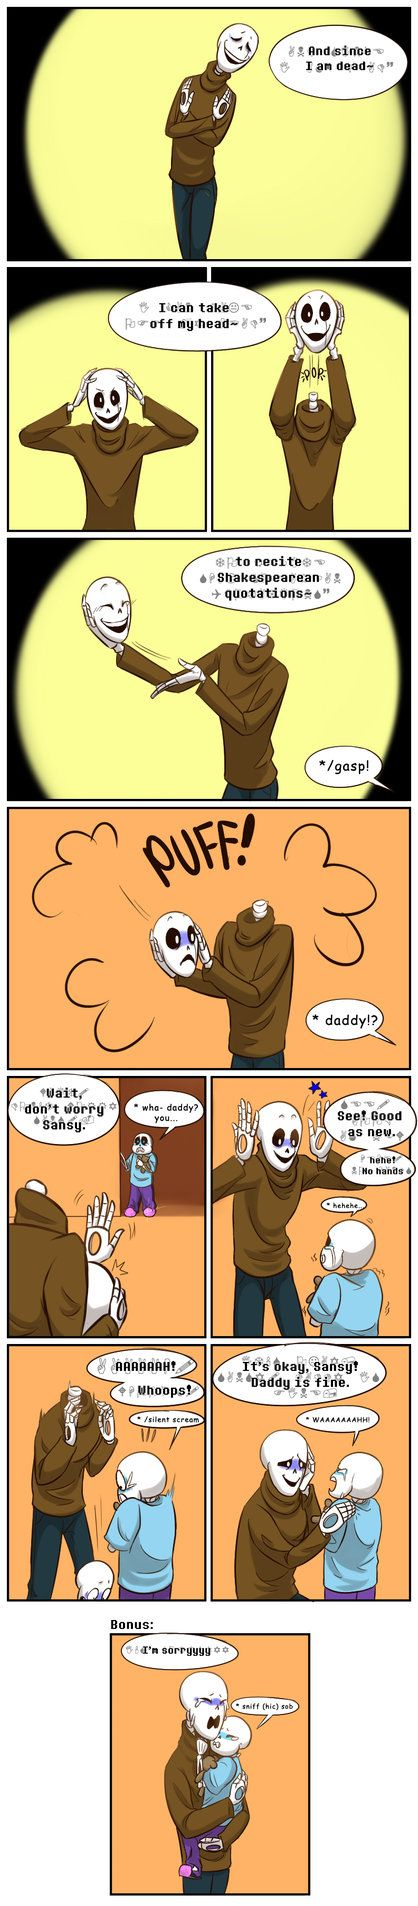 Gaster s Lament by Noire73 on DeviantArt